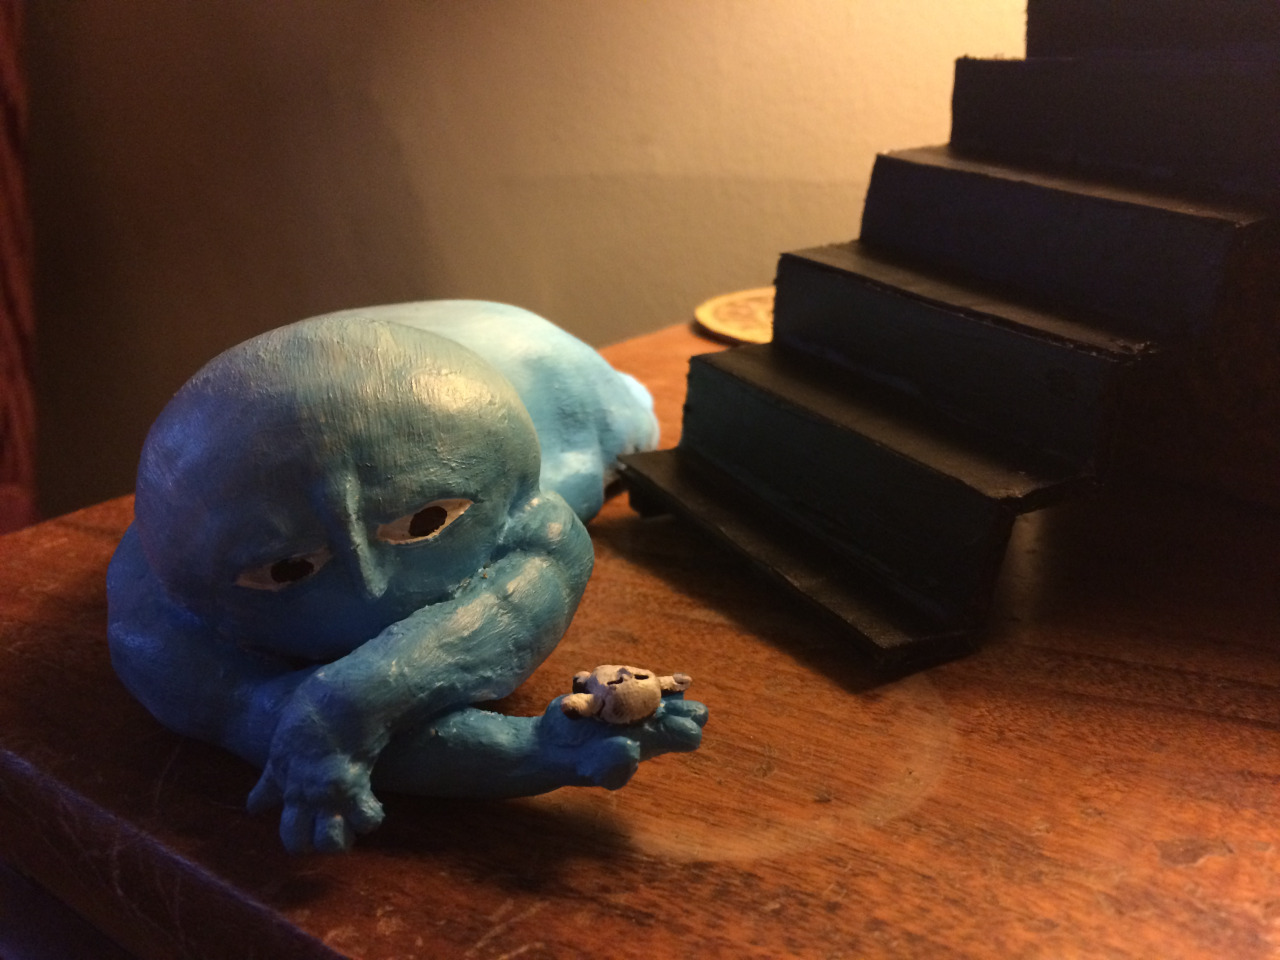 Milo is blue, well he is kinda sad, but blue?!?! I think he will change colors sometimes but mostly be white. He's a little freaked out after falling down the stairs and finding himself in the palm of his hand.